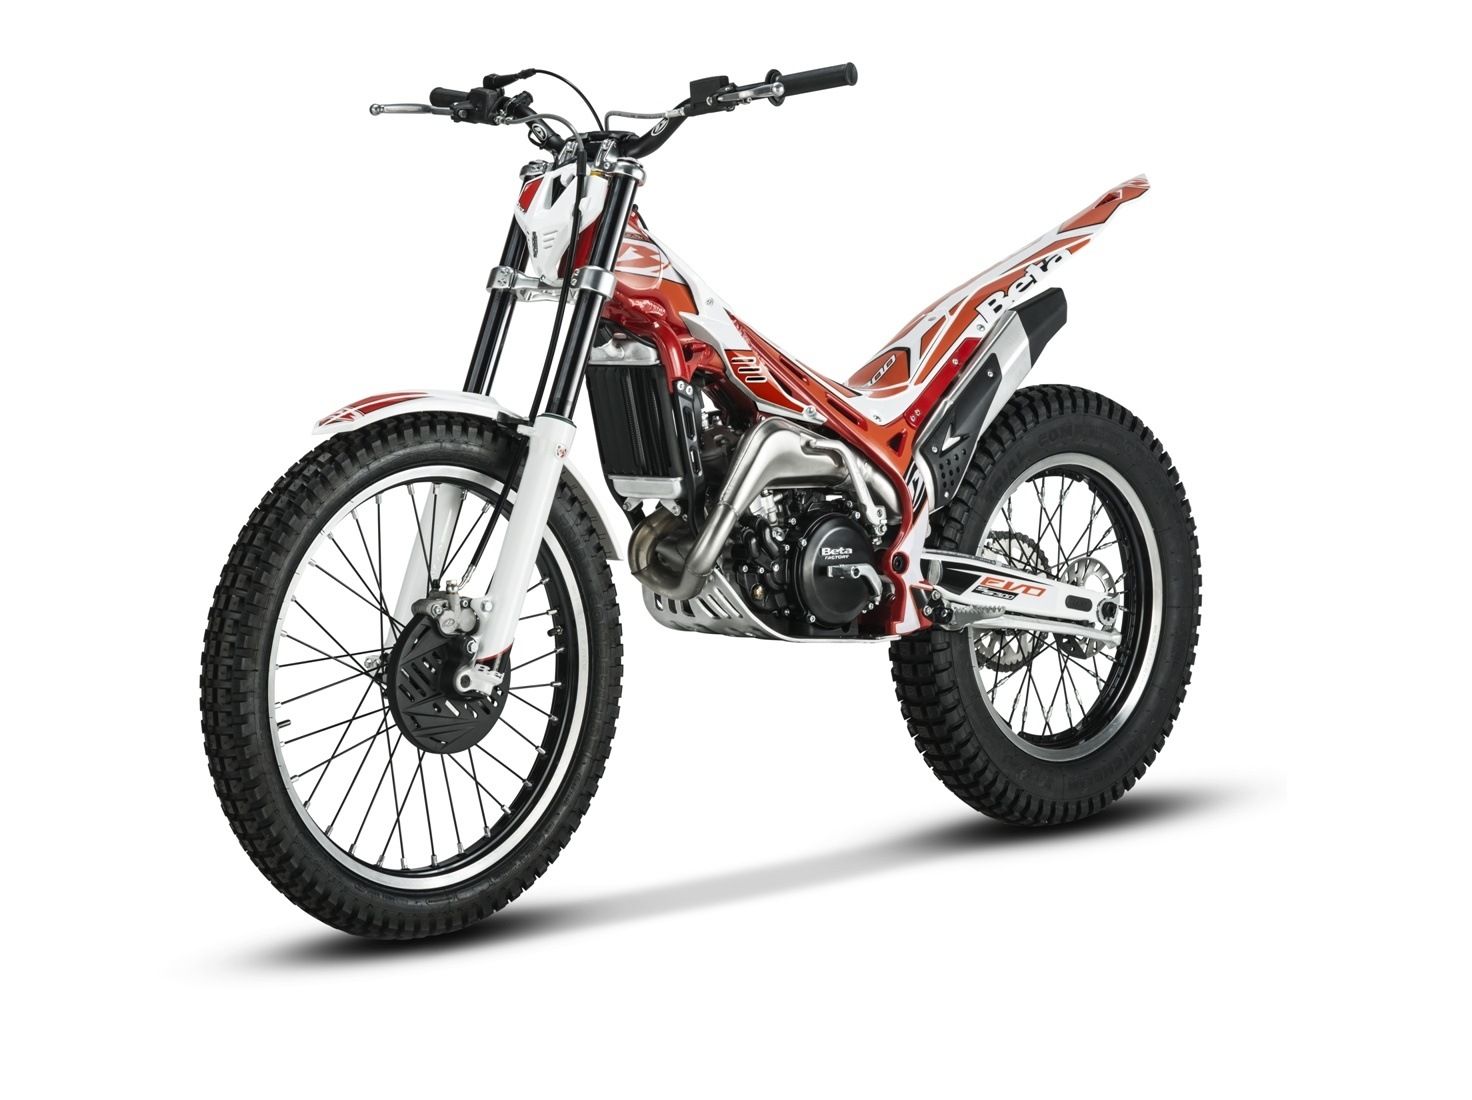 New Beta Evo 300 Ss Super Smooth Motorcycles In